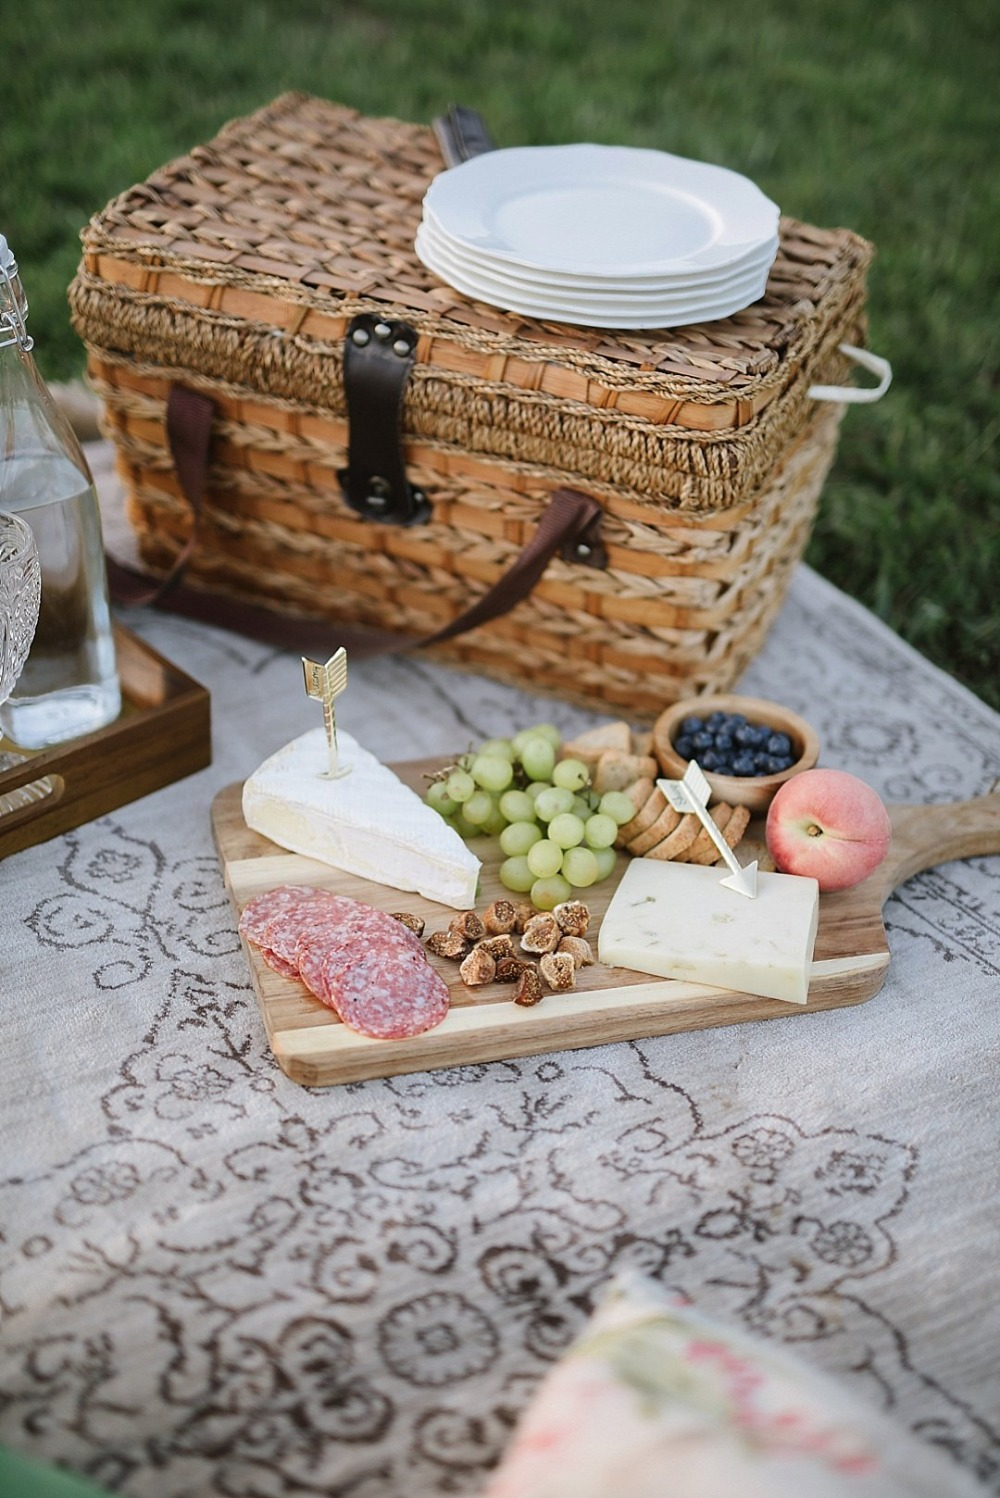 Cute picnic ceremony idea